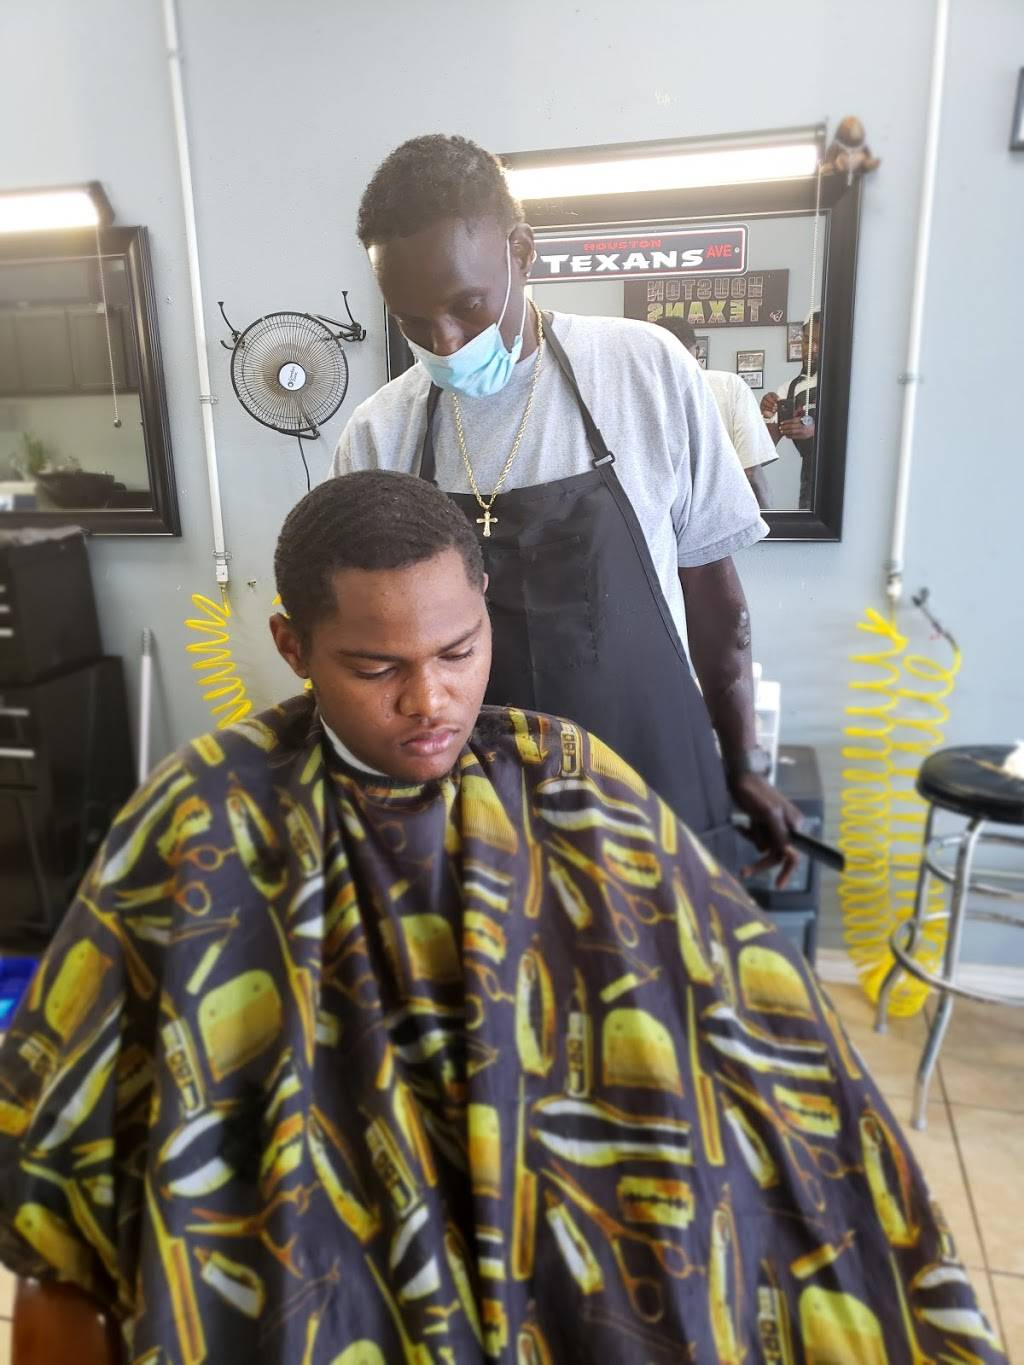 Tims Barber Shop - hair care  | Photo 2 of 7 | Address: 1250 Texas Pkwy, Stafford, TX 77477, USA | Phone: (832) 455-7930